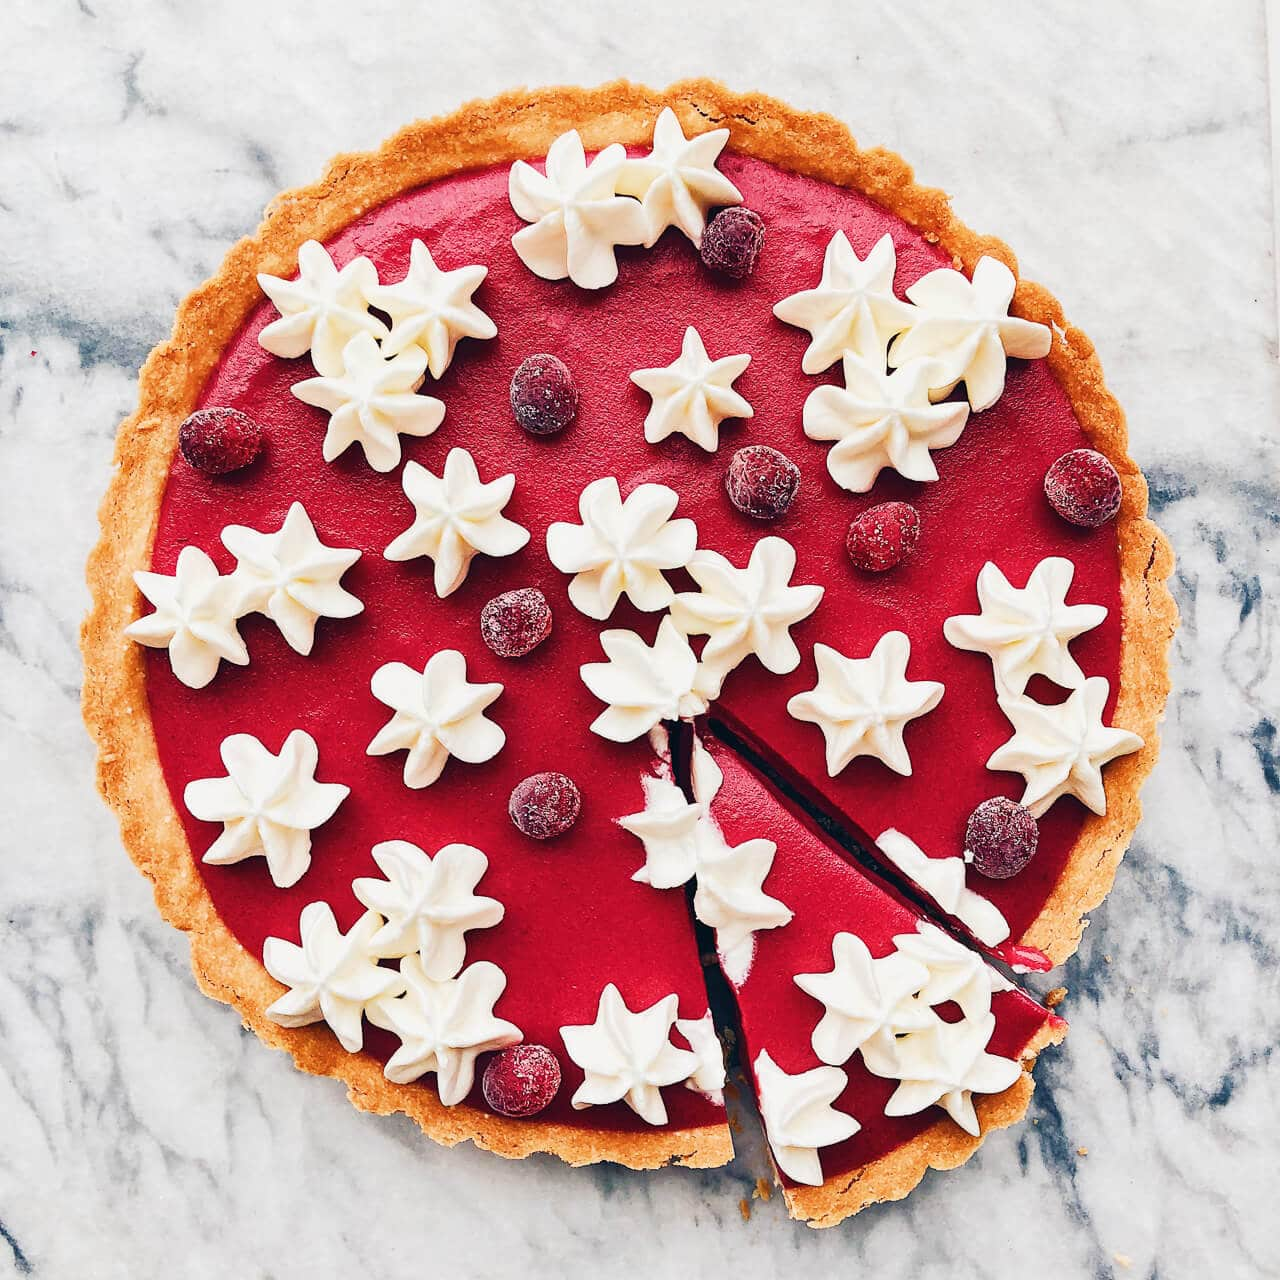 Cranberry curd tart with press-in shortbread crust baked in a fluted tart pan. Whipped cream is piped on the surface of the finished tart before serving